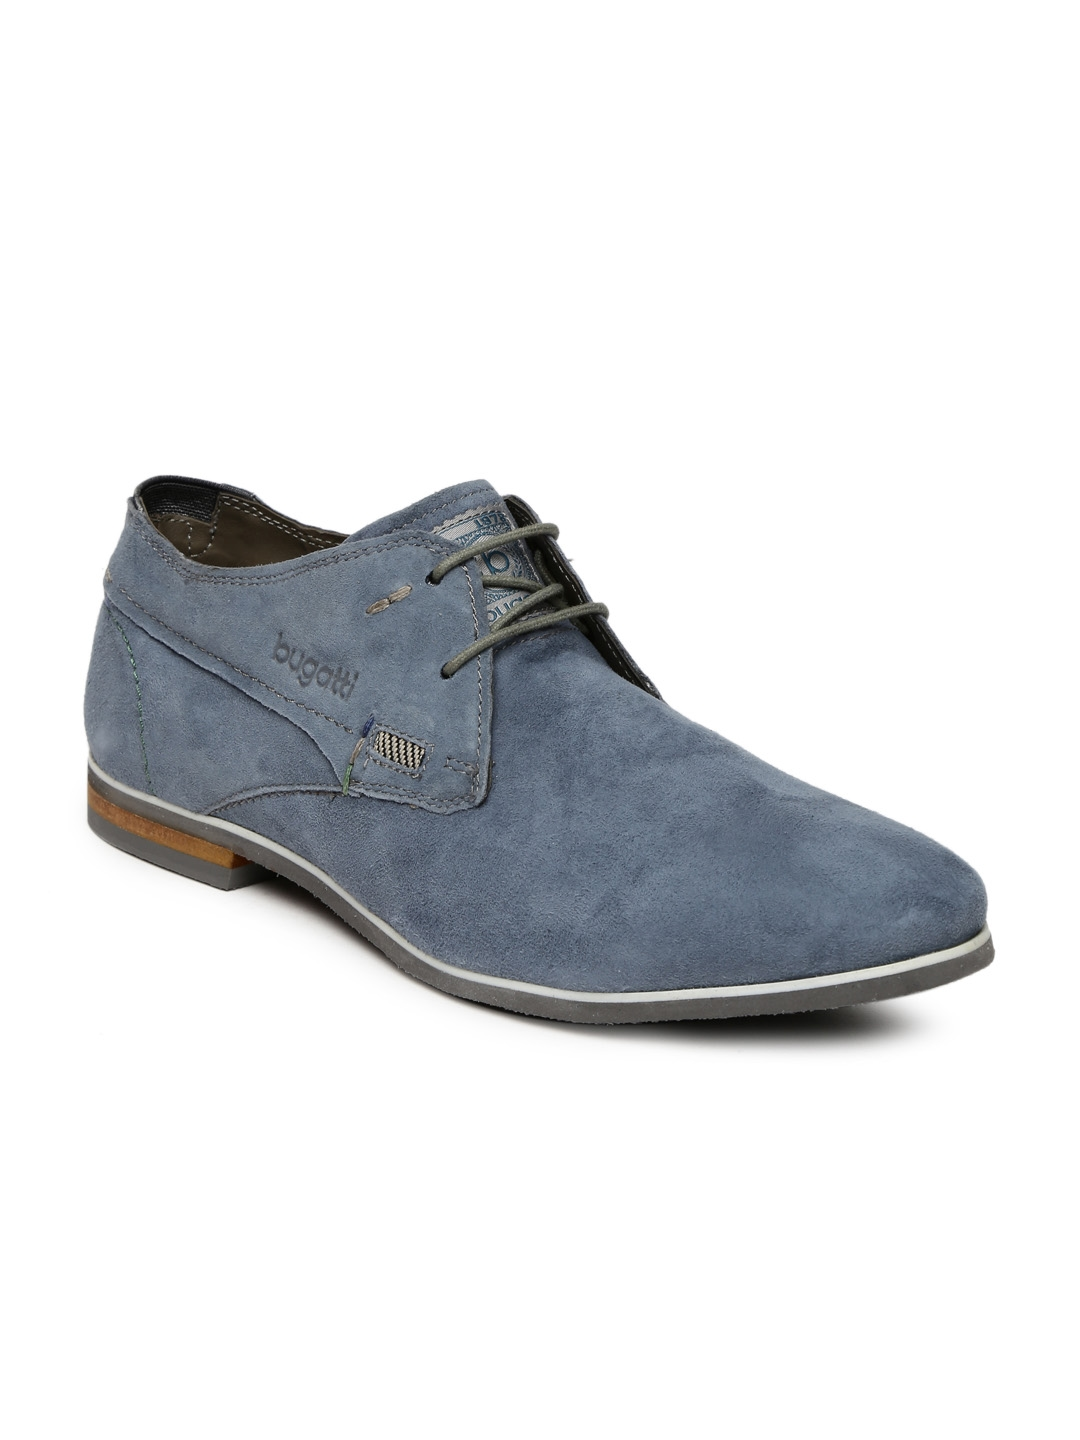 7cad49e054d27 Buy Bugatti Men Blue Bertoldo Suede Derbys - Casual Shoes for Men ...